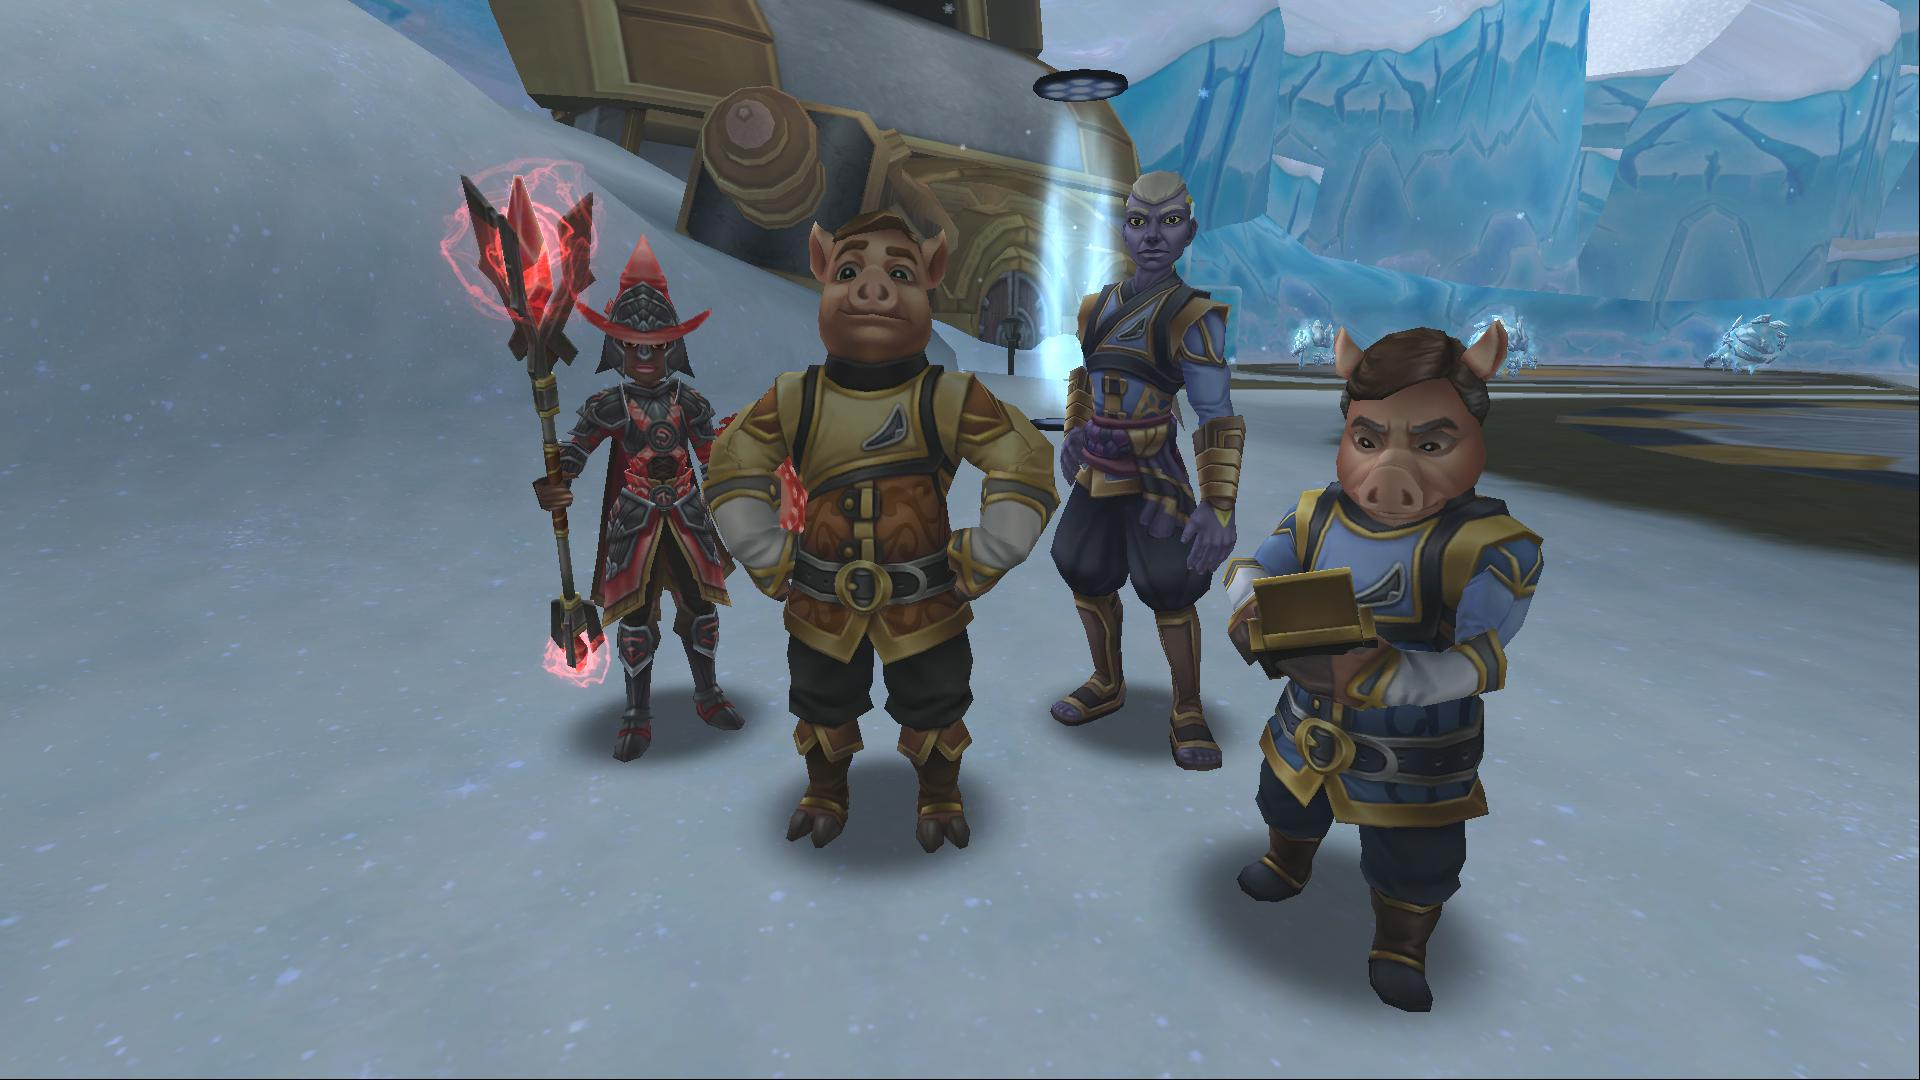 10 Things You Might Not Know About the Making of Wizard101